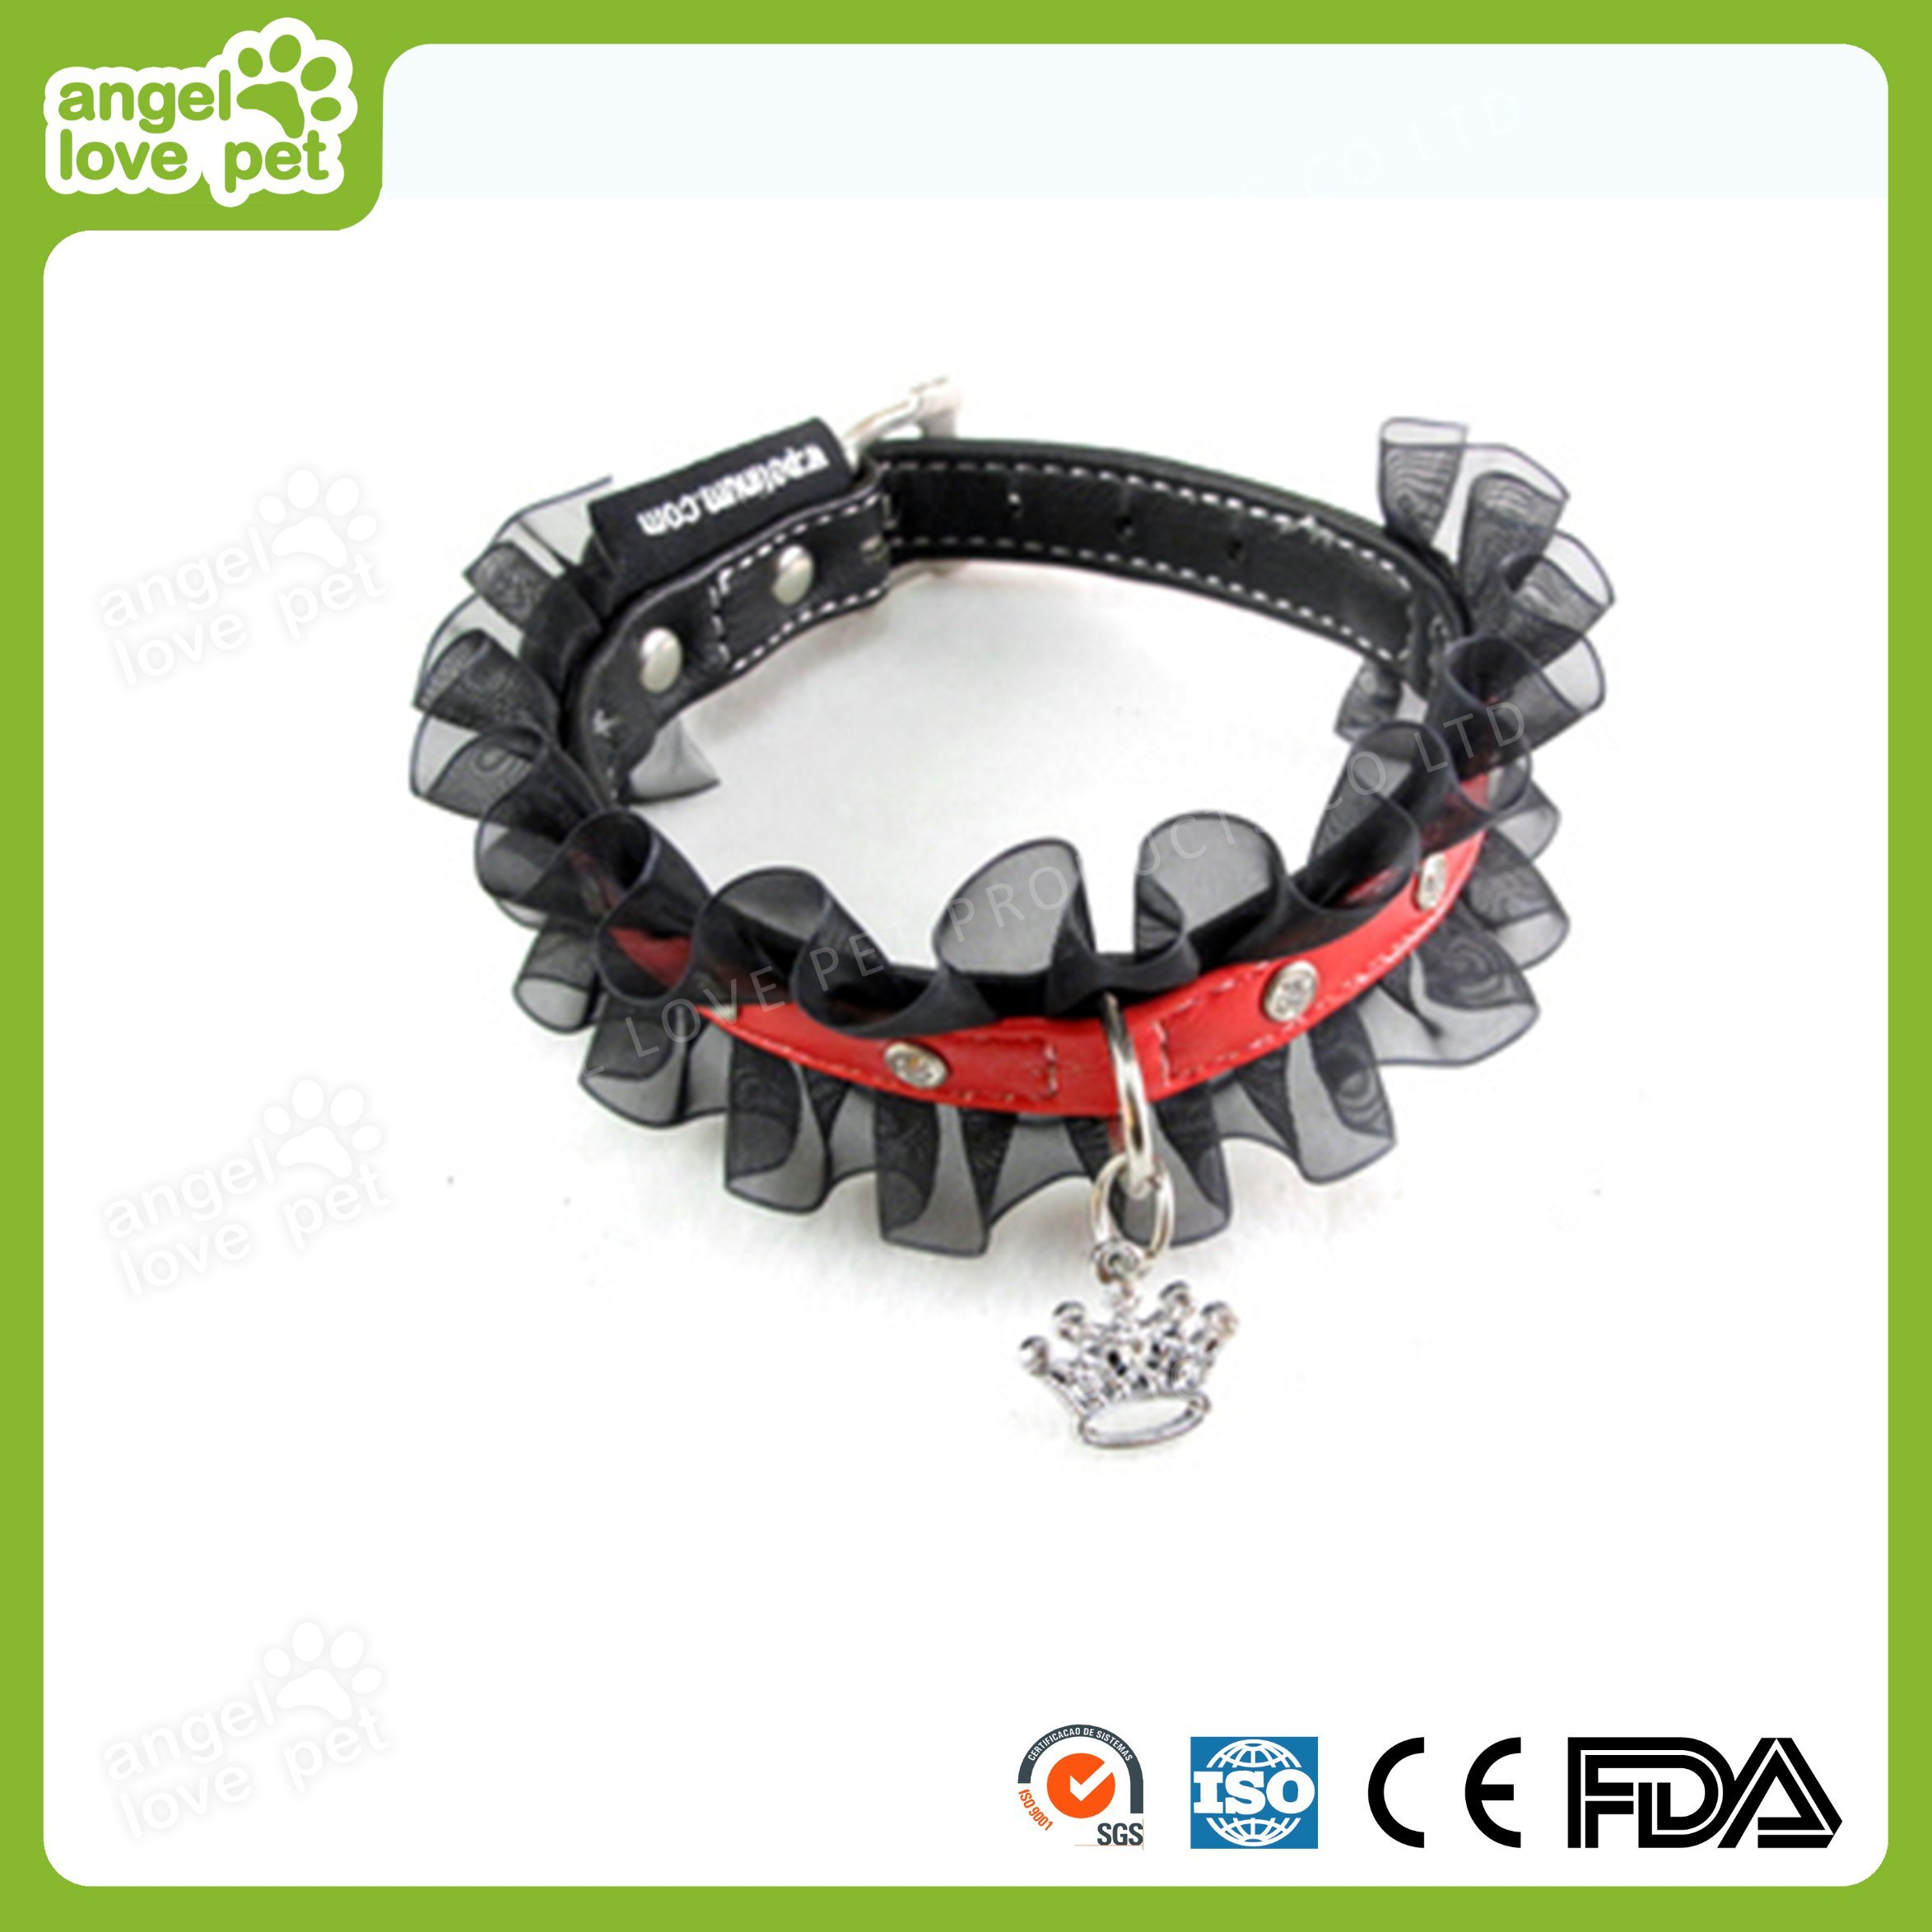 High Quality Leather with Diamond Lace Pet Collar, Pet Product